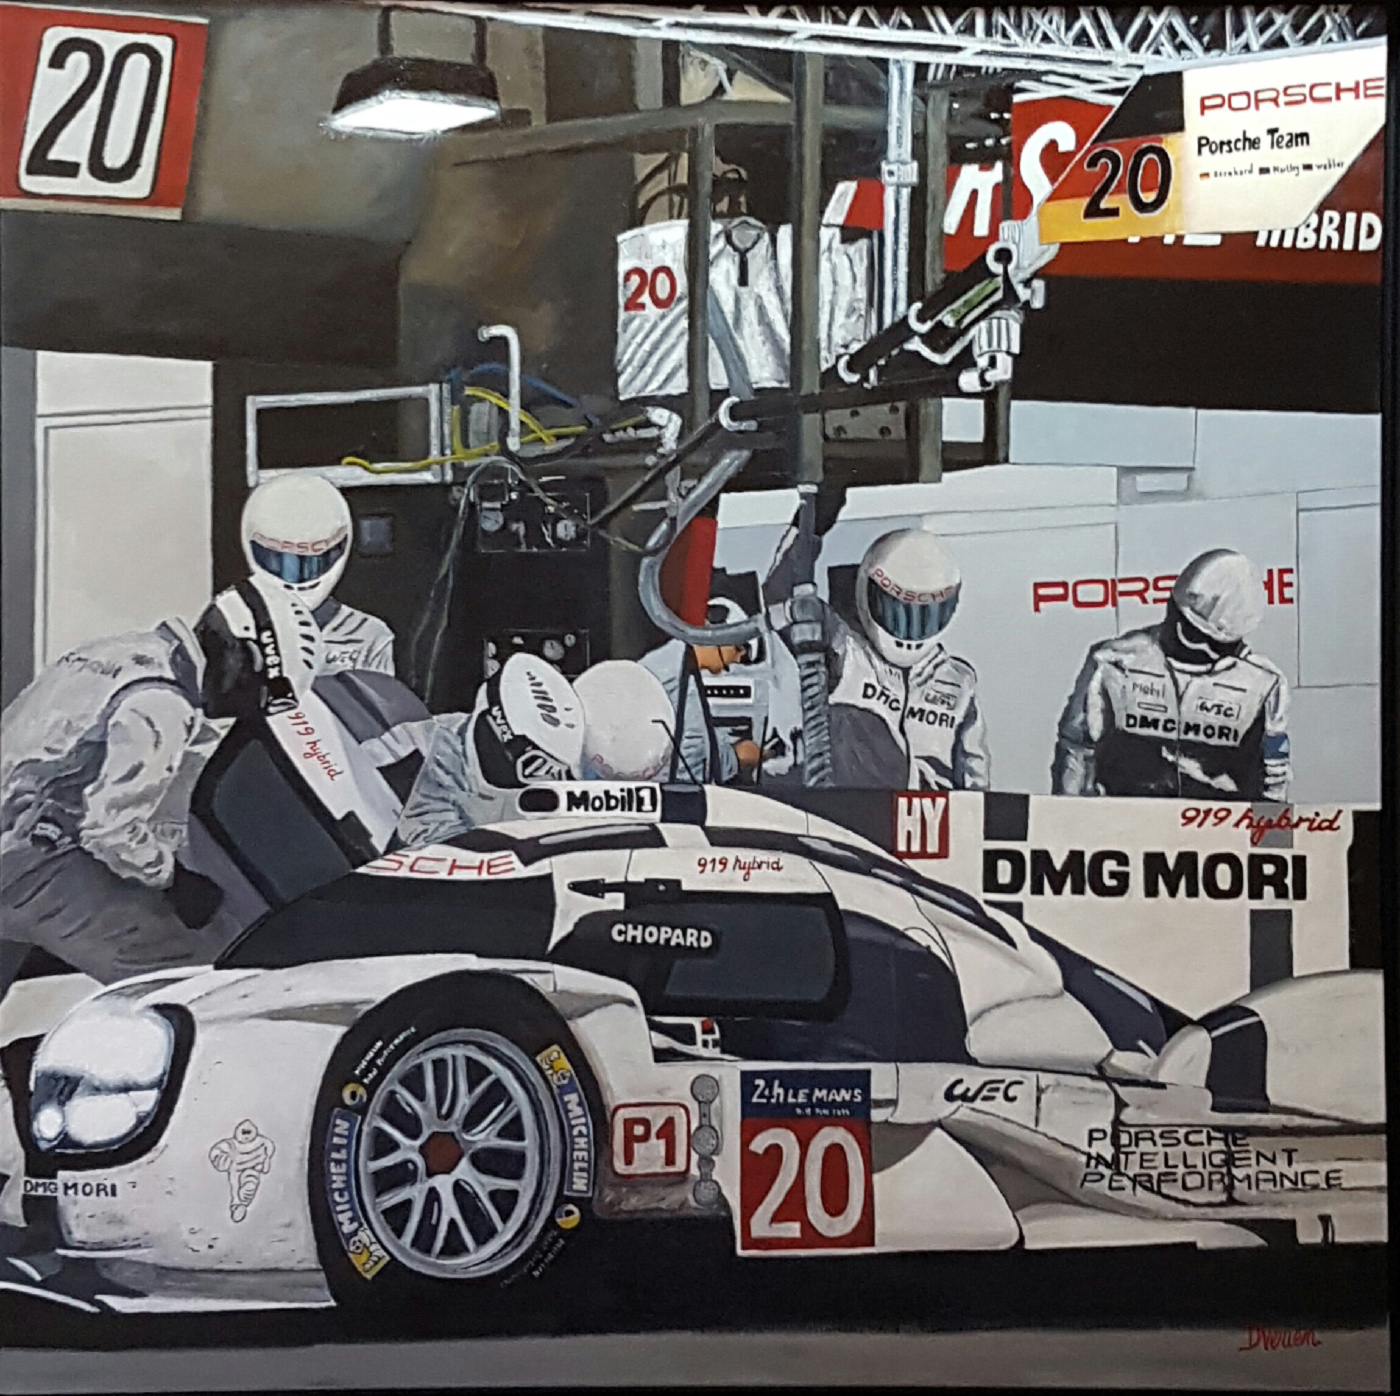 ravitaillement porsche 24h du mans 2014 gallery race cars paintings. Black Bedroom Furniture Sets. Home Design Ideas